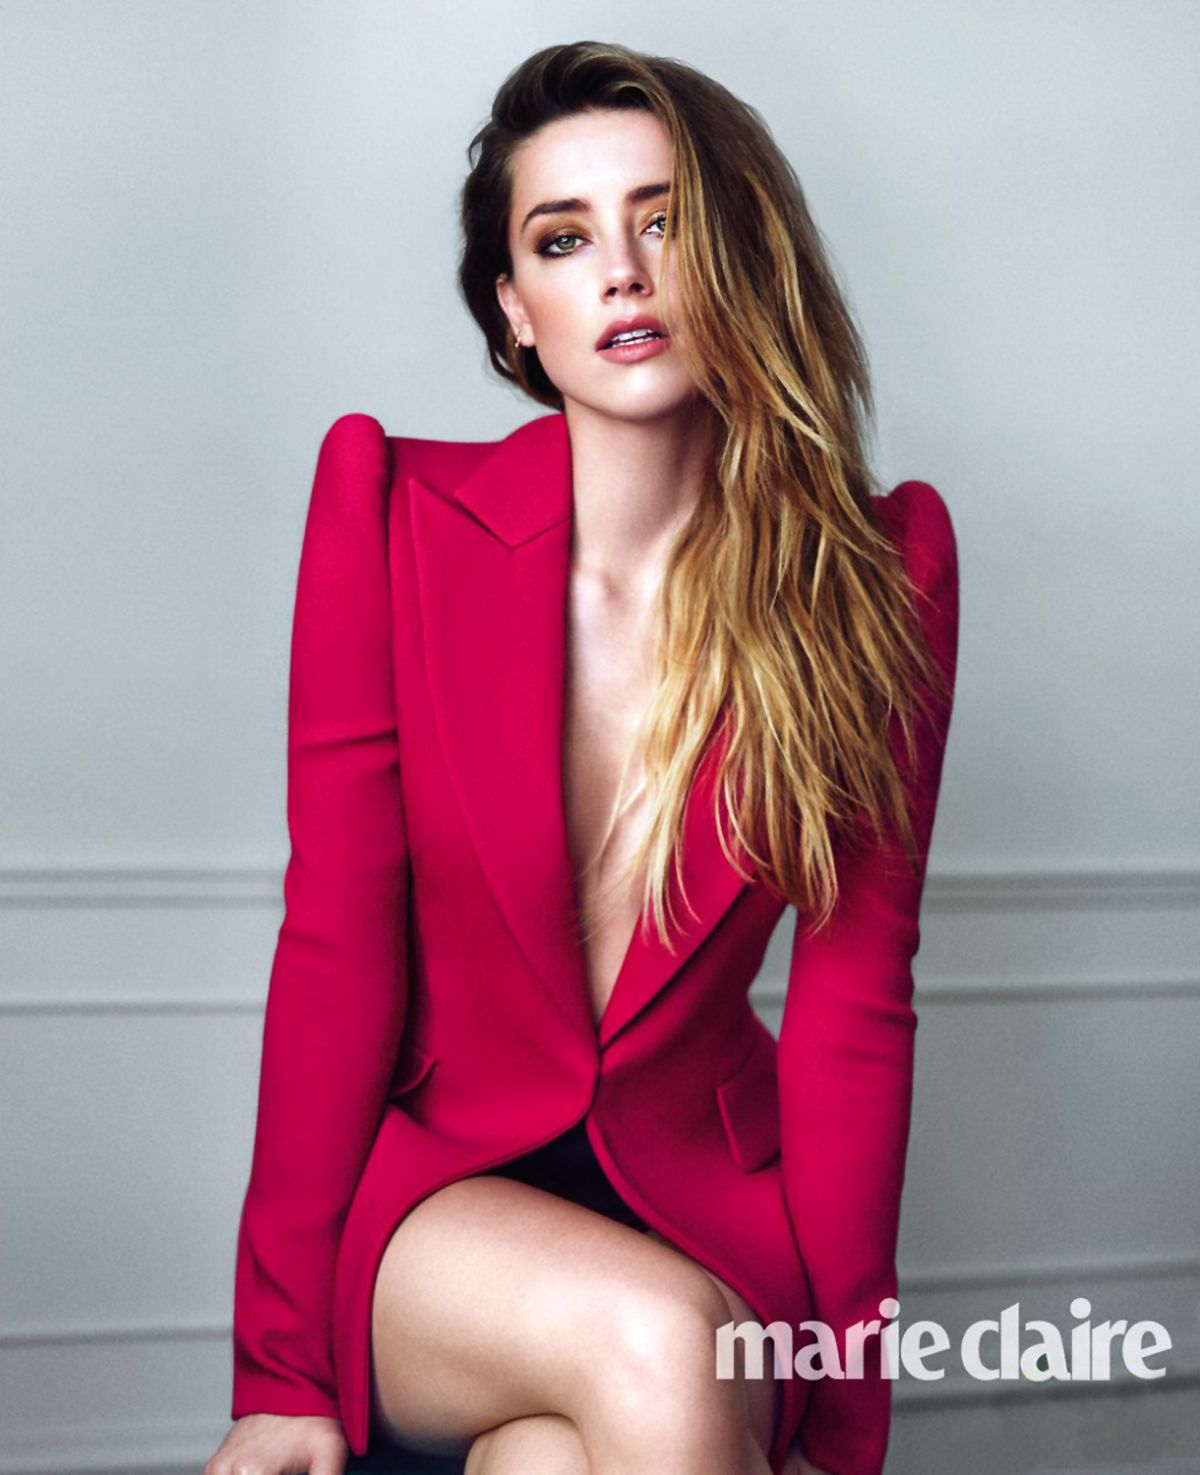 amber heard in marie claire magazine  december 2015 issue